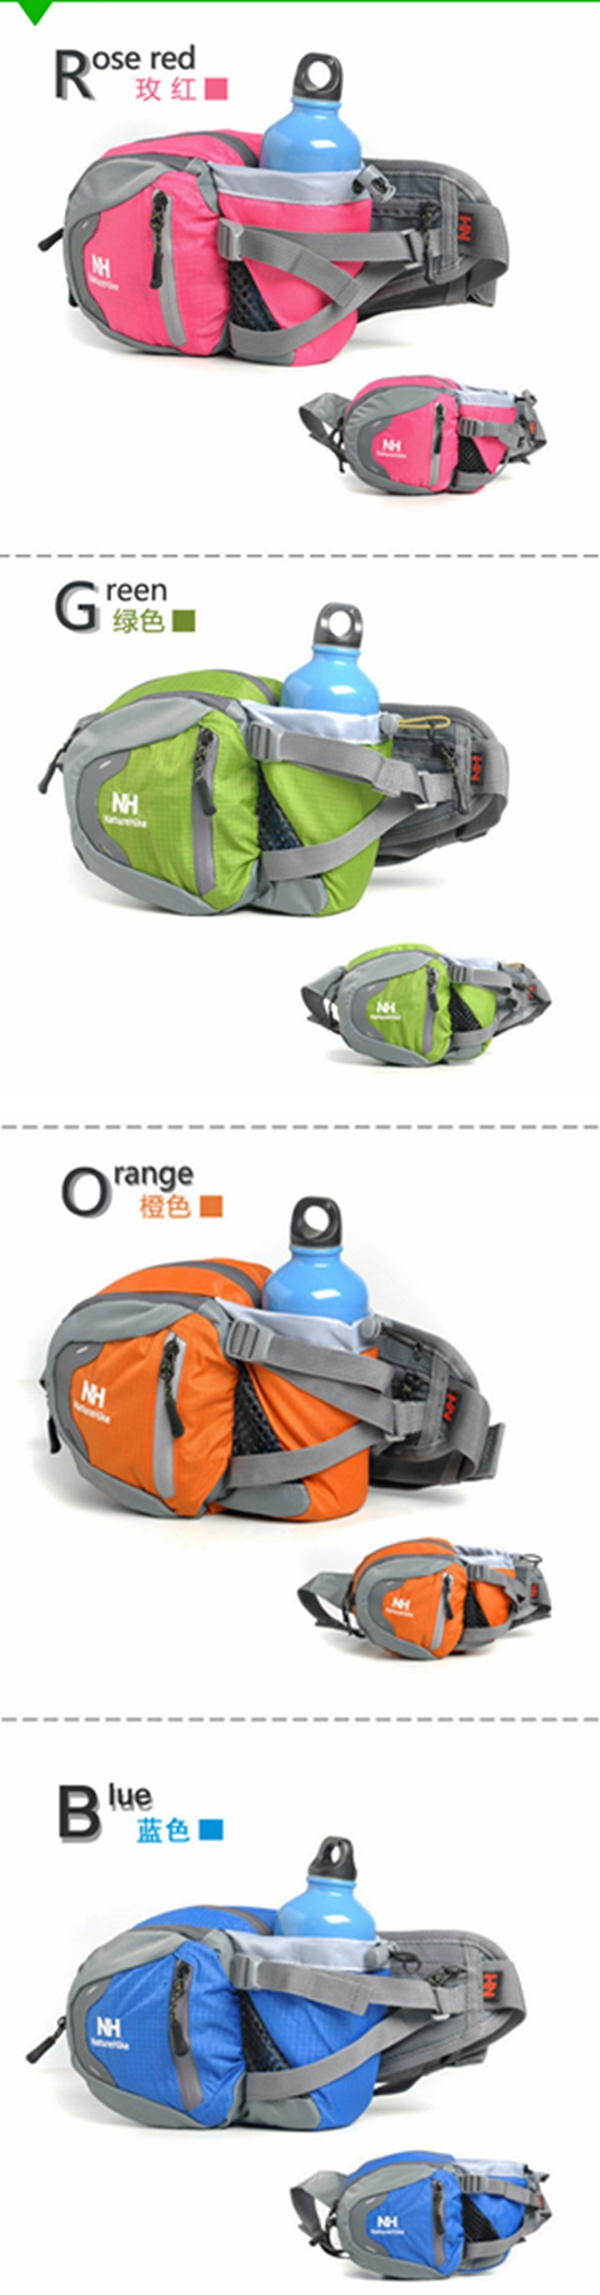 -waterproof-outdoor-sport-hiking-waist-pack-bag-colors2